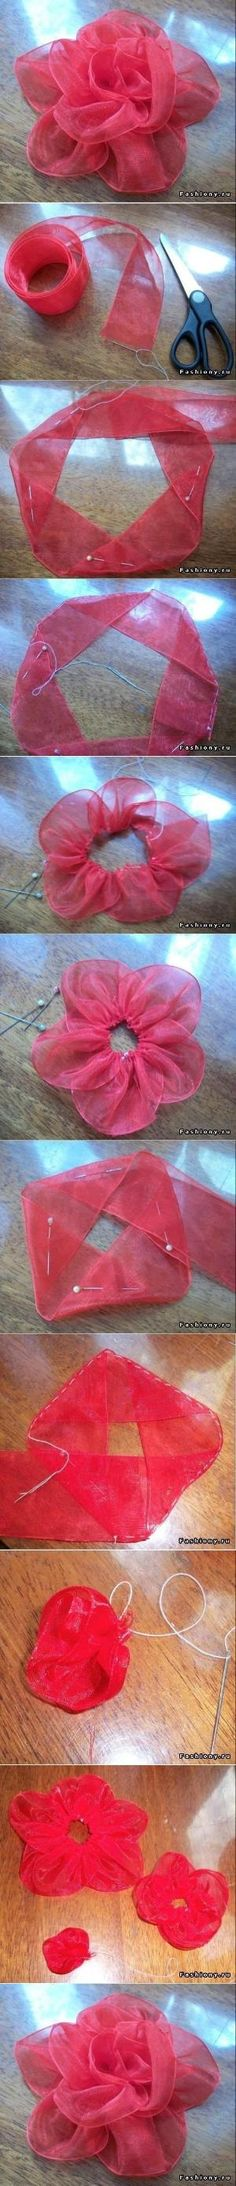 DIY Ribbon Tape Flower DIY Ribbon Tape Flower by bleu.